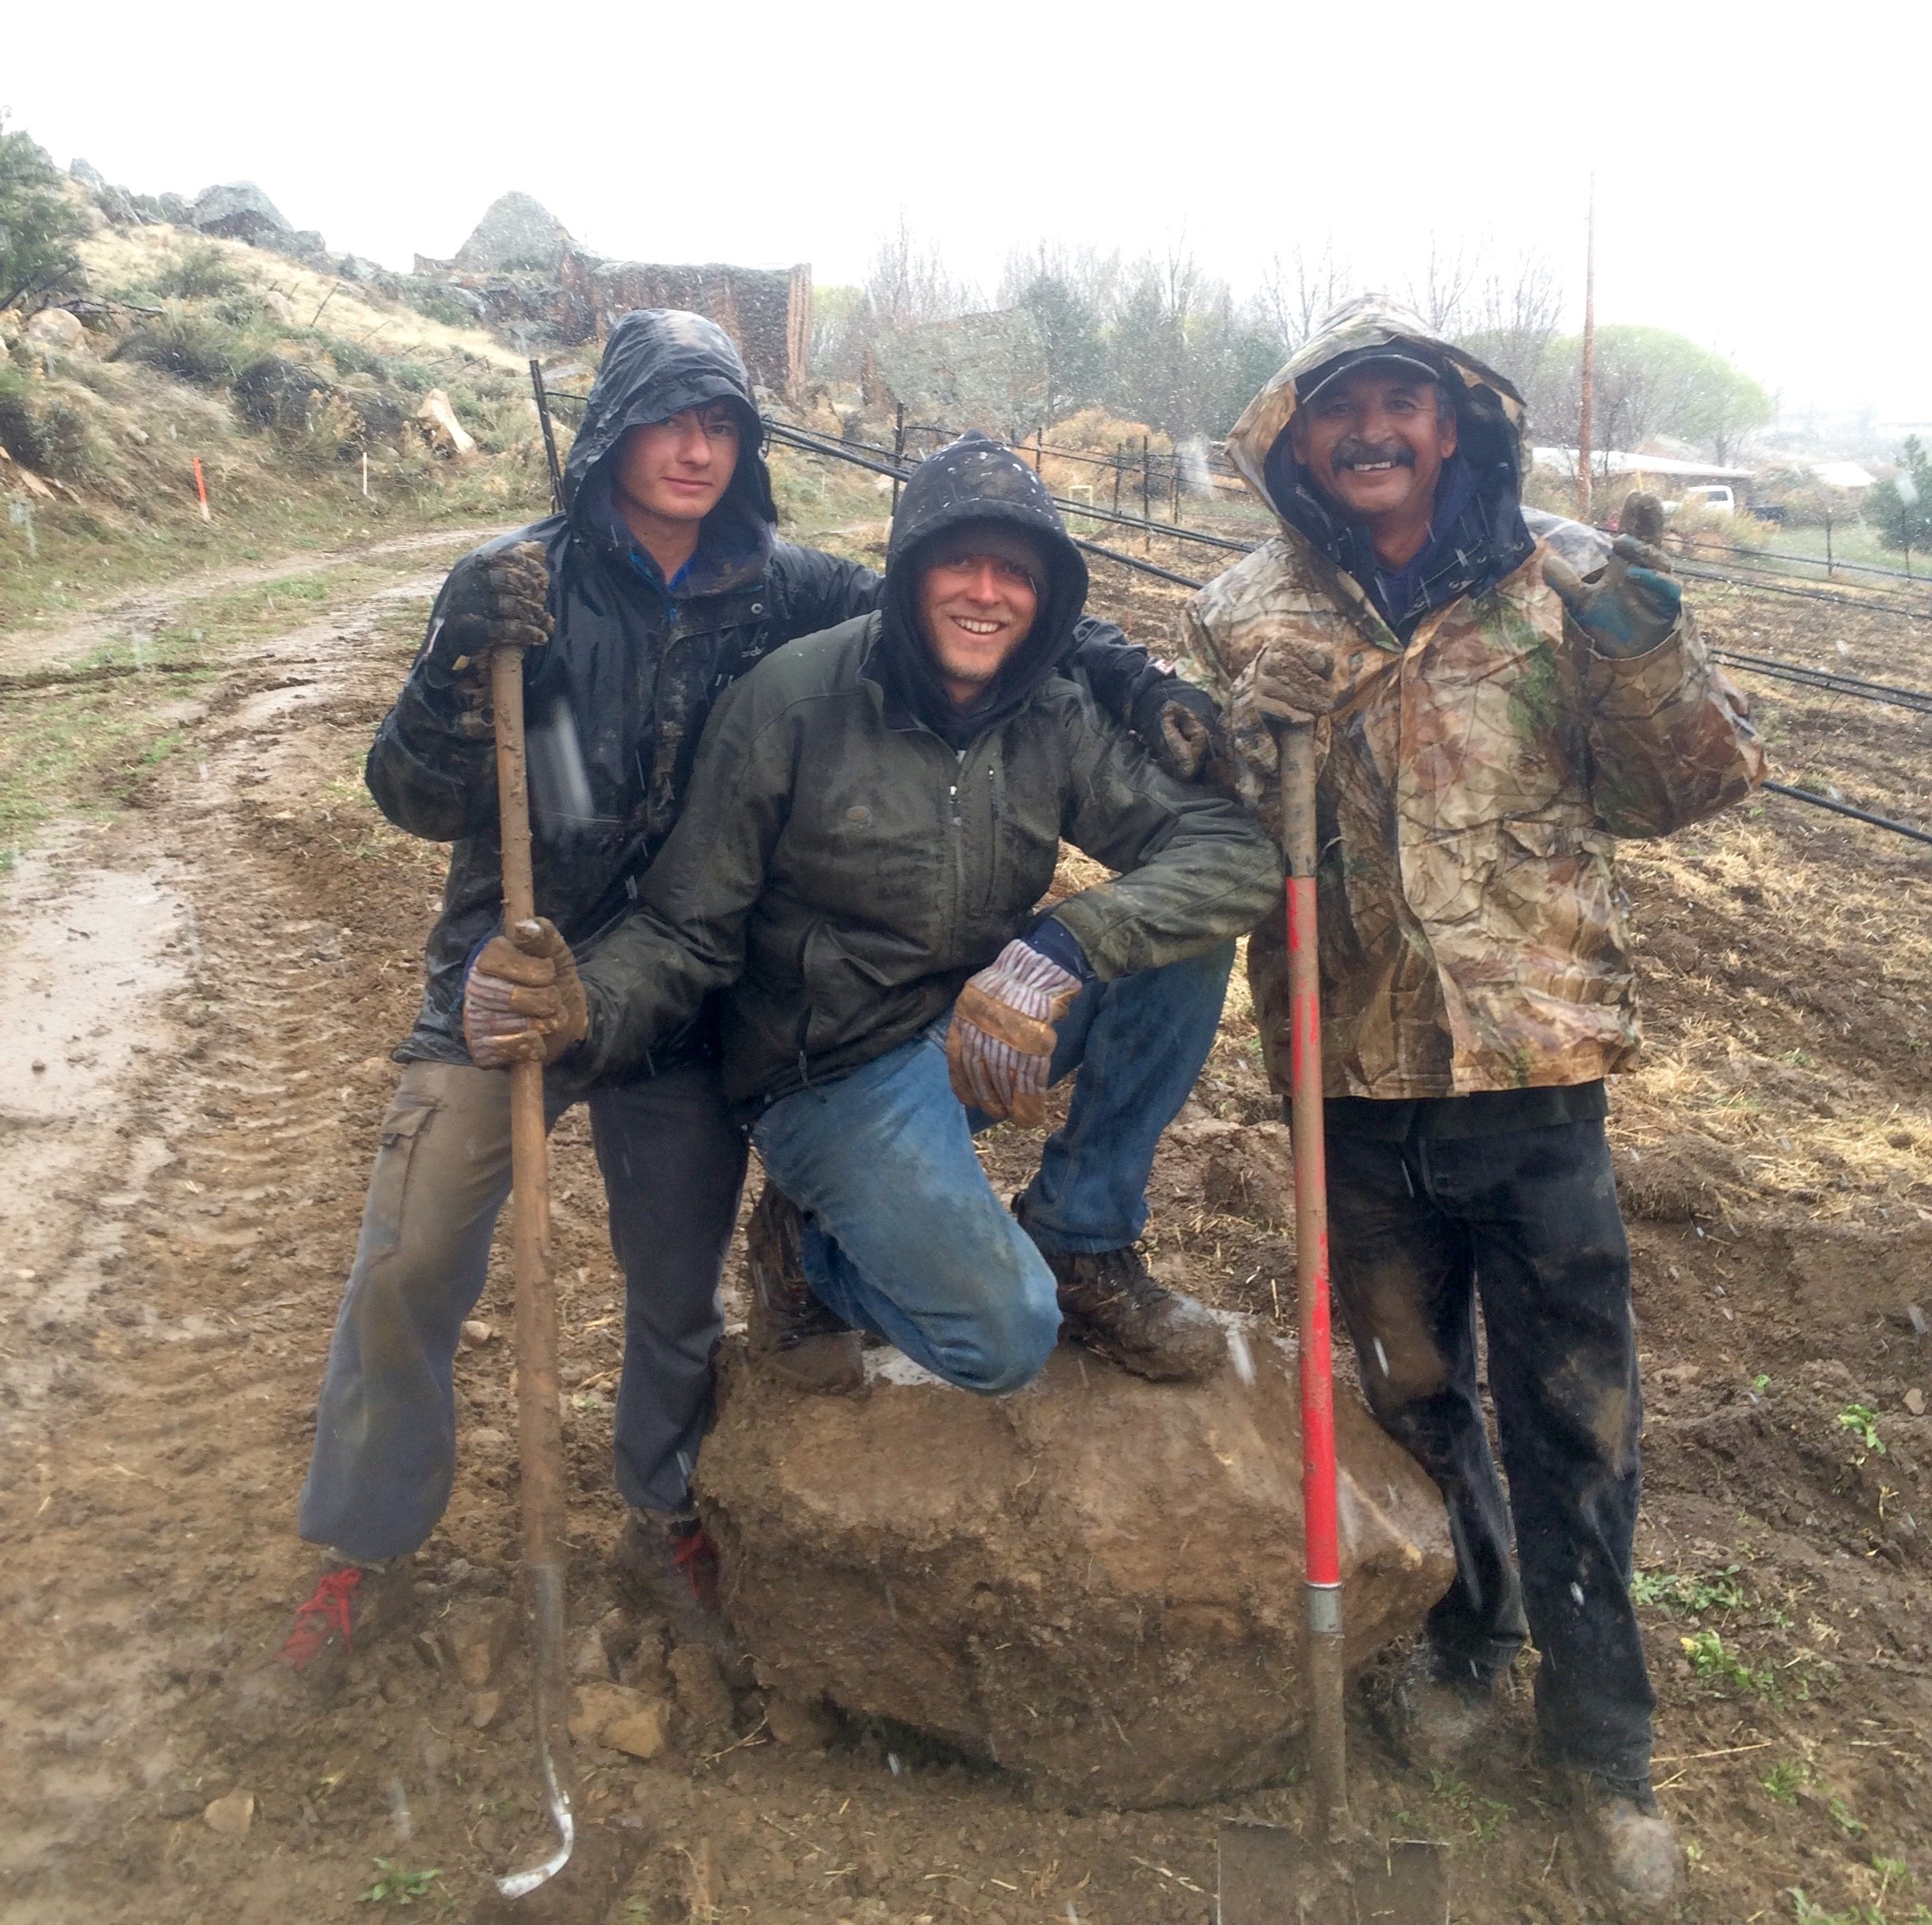 Jean Francois, Gus and Adolfo harvest rocks, one of just a few spring farm tasks that can still be done in the rain. Working with fruit trees while they're wet encourages the spread of disease.